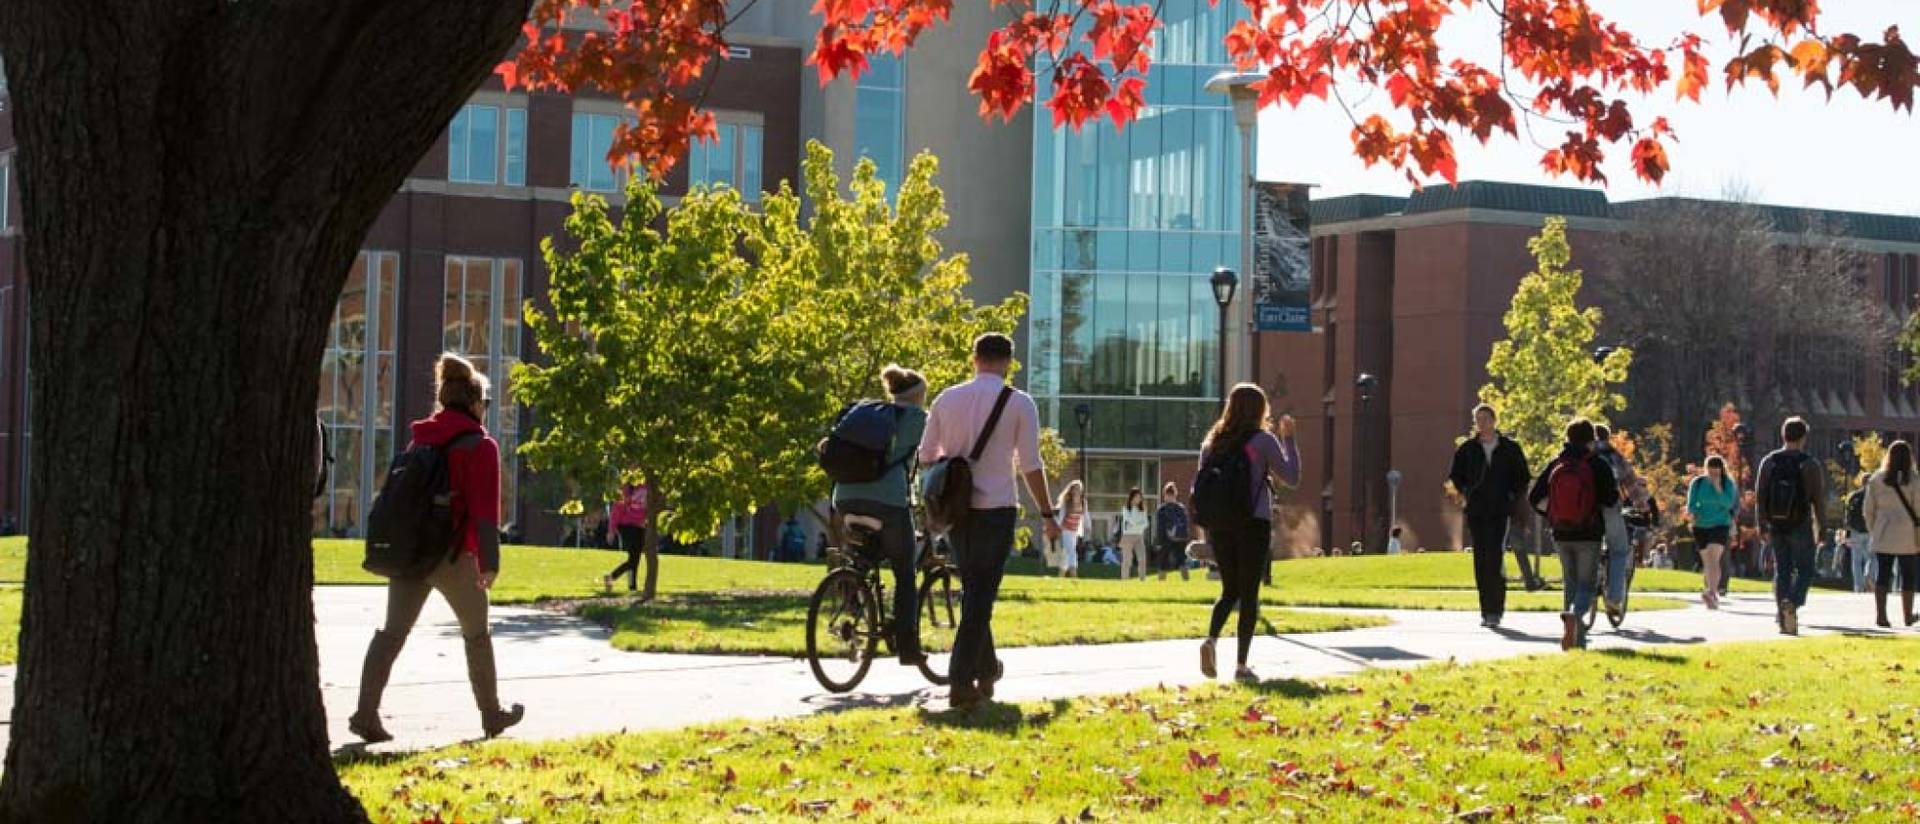 Students walk through lower campus on a beautiful fall day